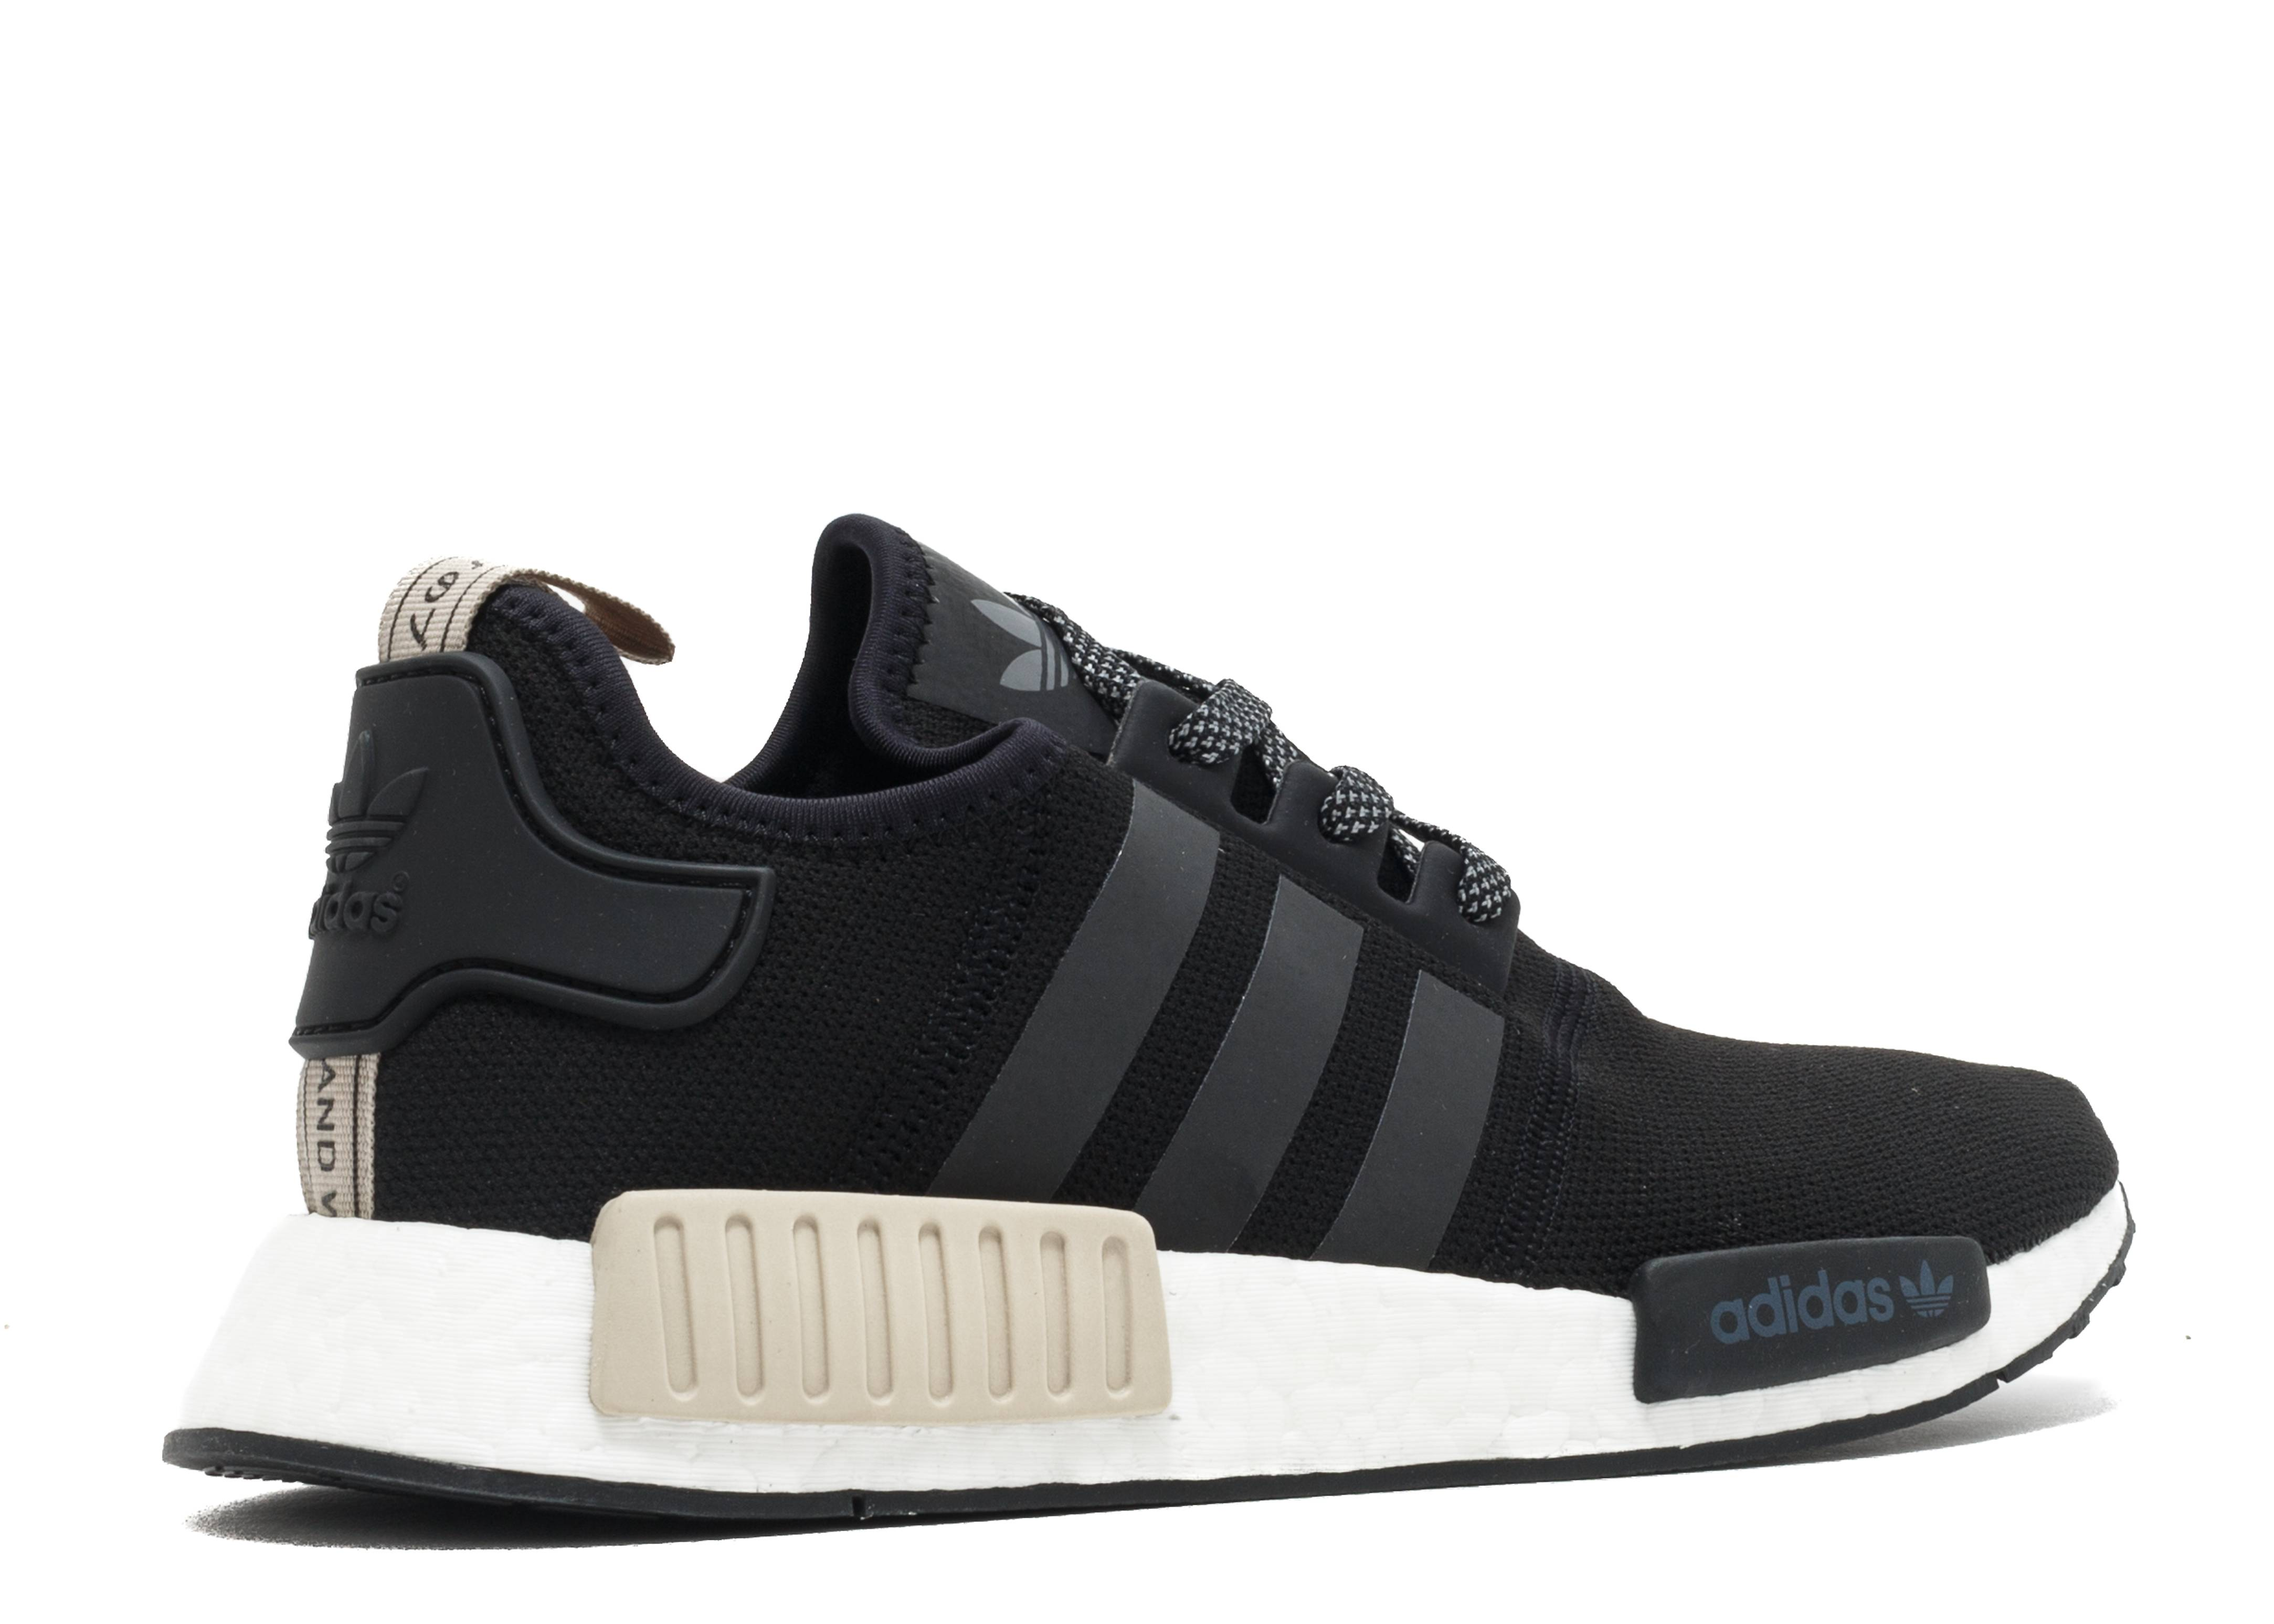 """Another Chance at the BAPE x adidas NMD R1 """"Black Camo"""